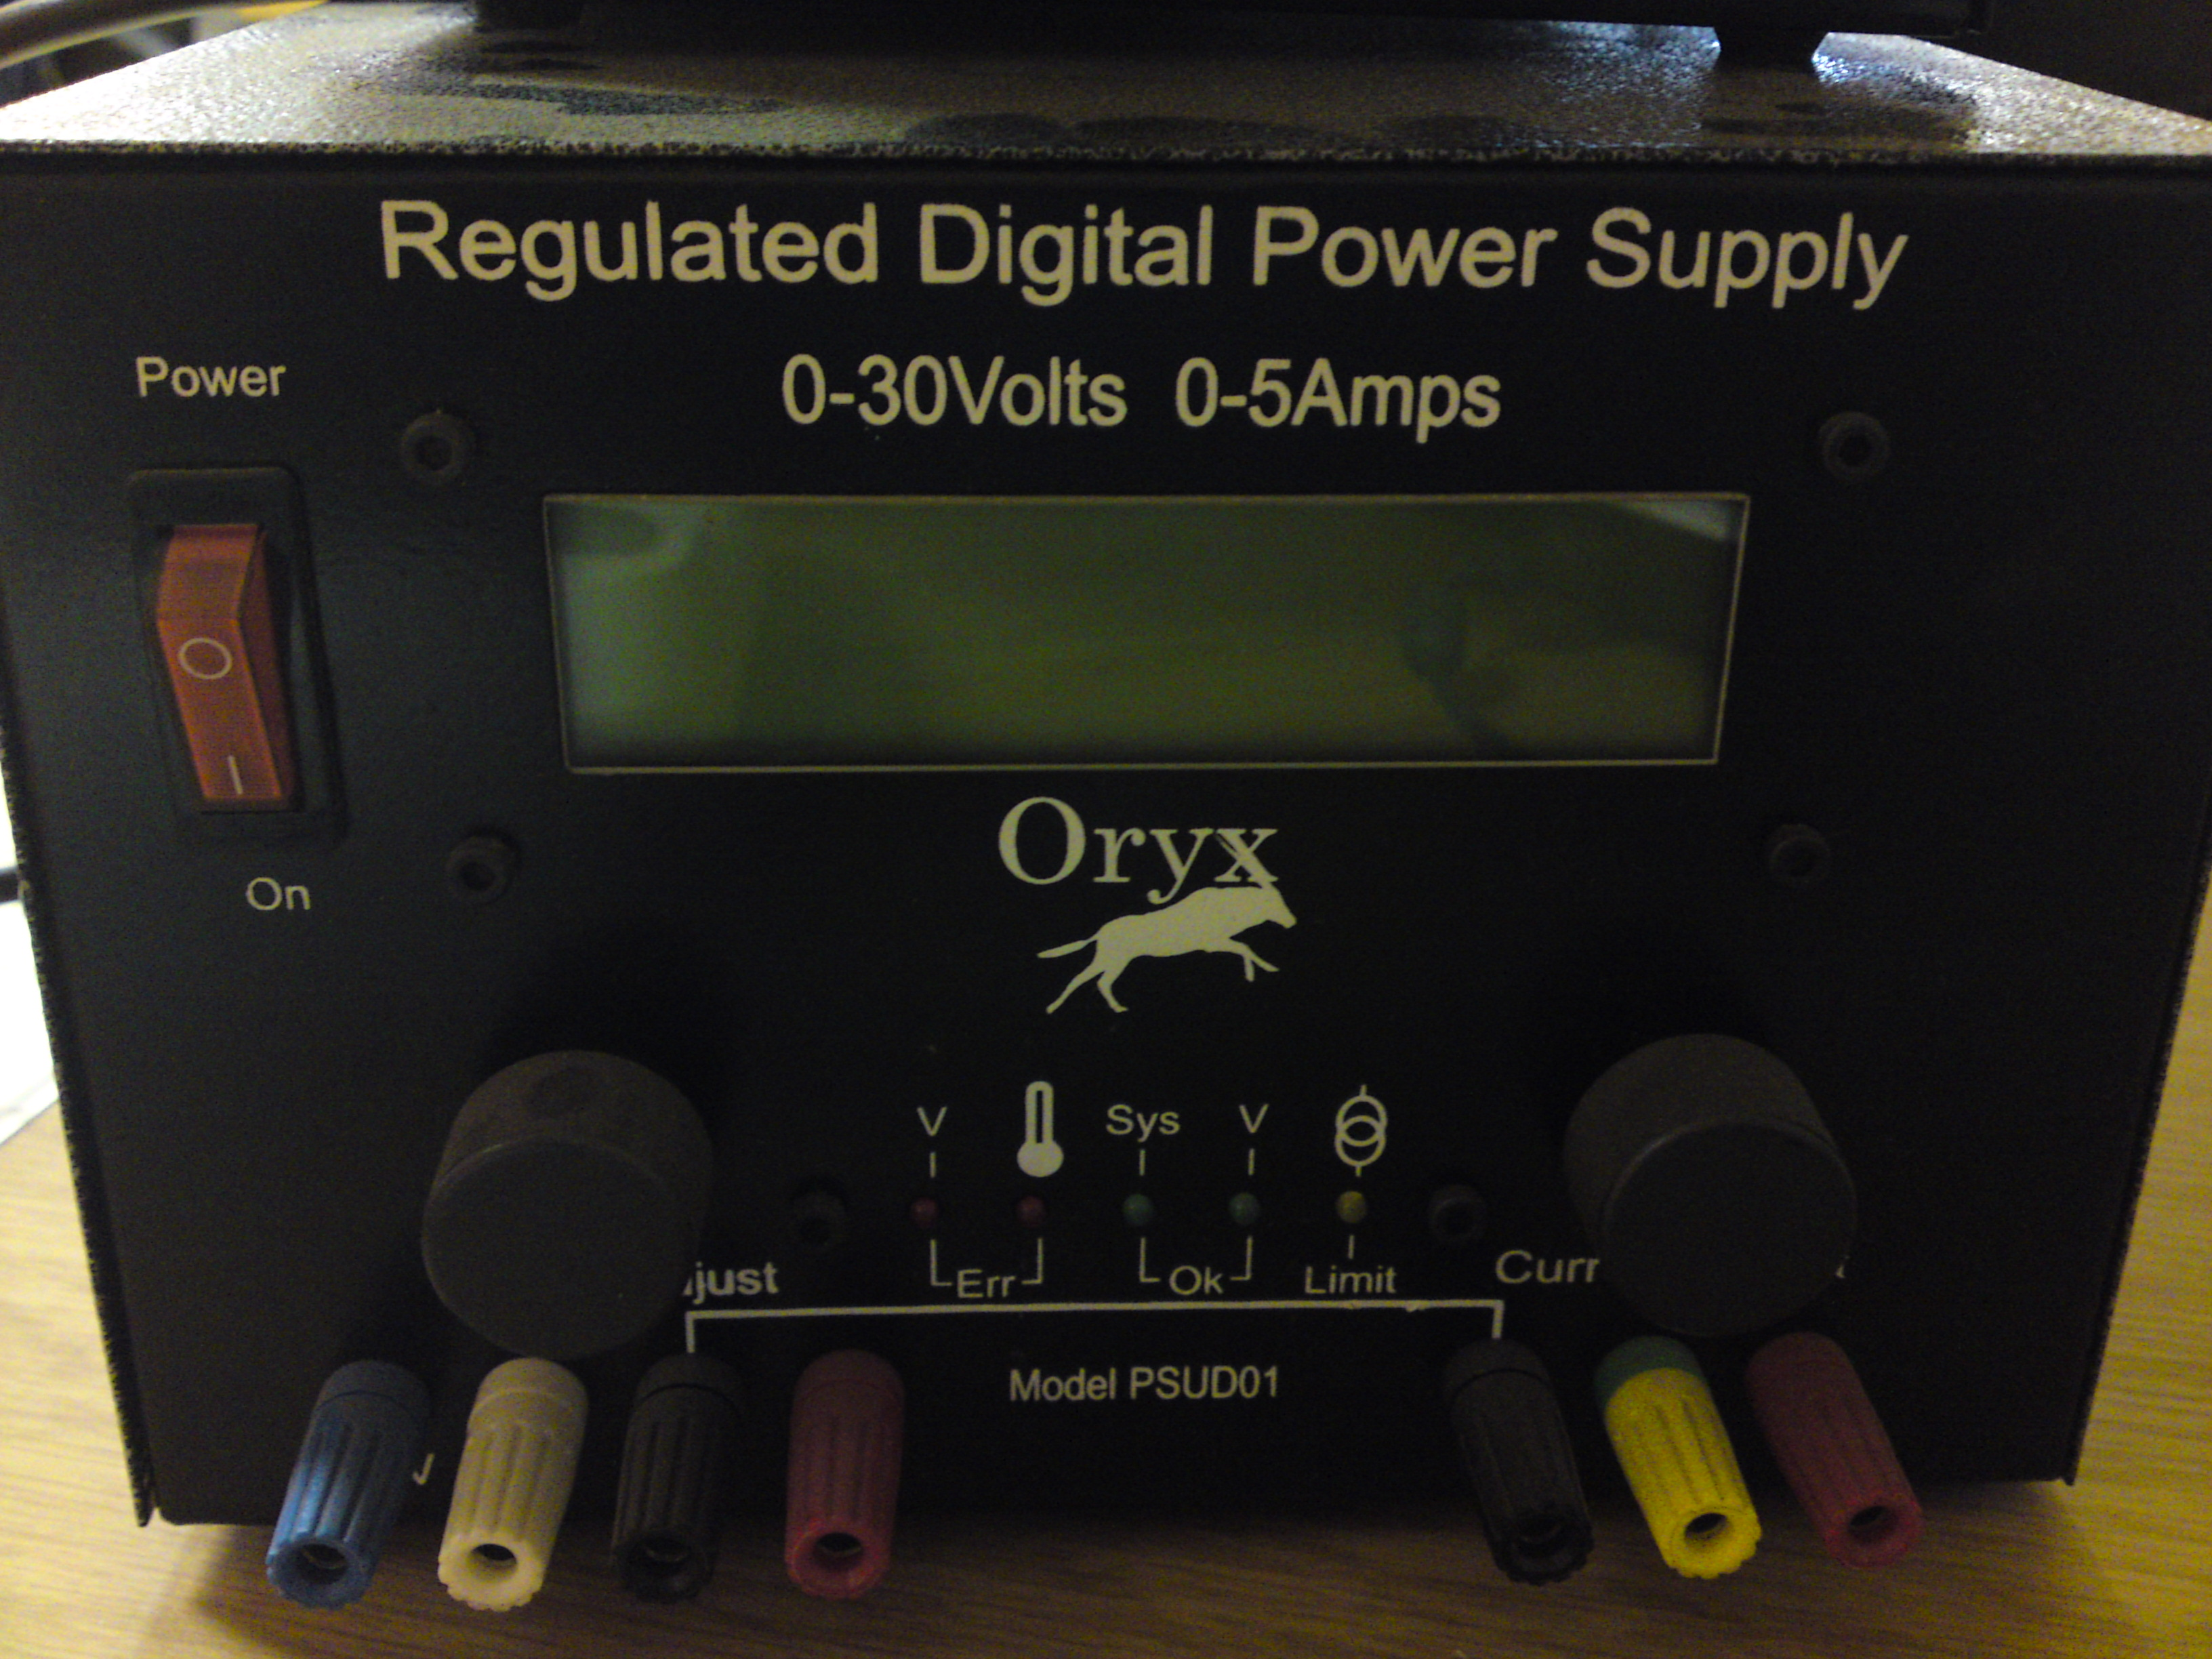 Oryx Power Supplies